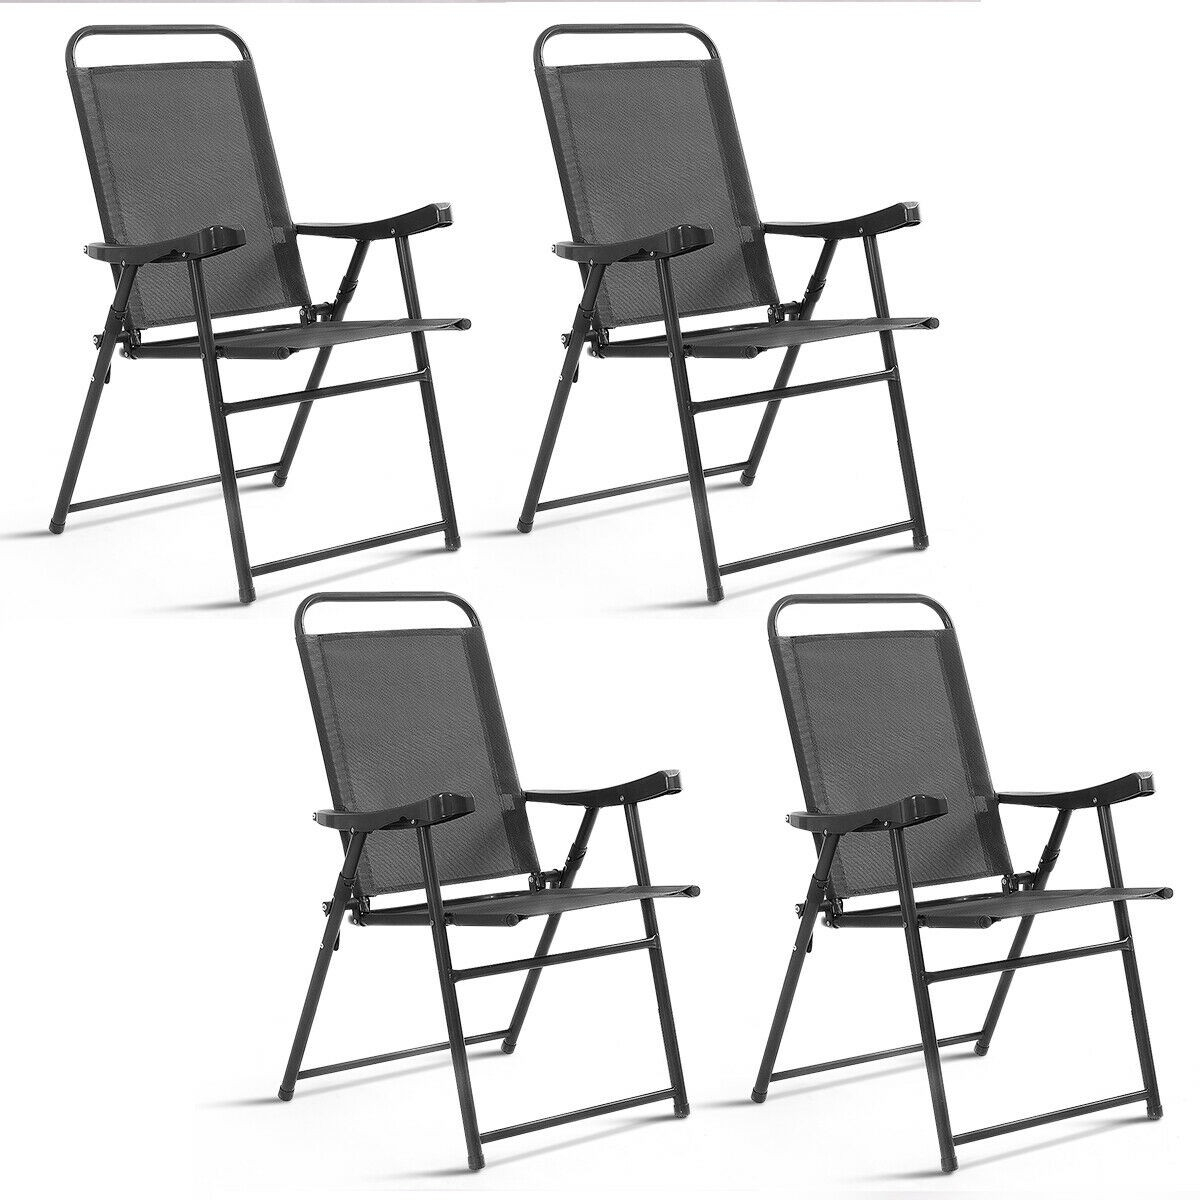 Awesome Details About Durable Outdoor Folding Chairs Patio Leisure Time Foldable Frame Back Rest 4 Pcs Machost Co Dining Chair Design Ideas Machostcouk